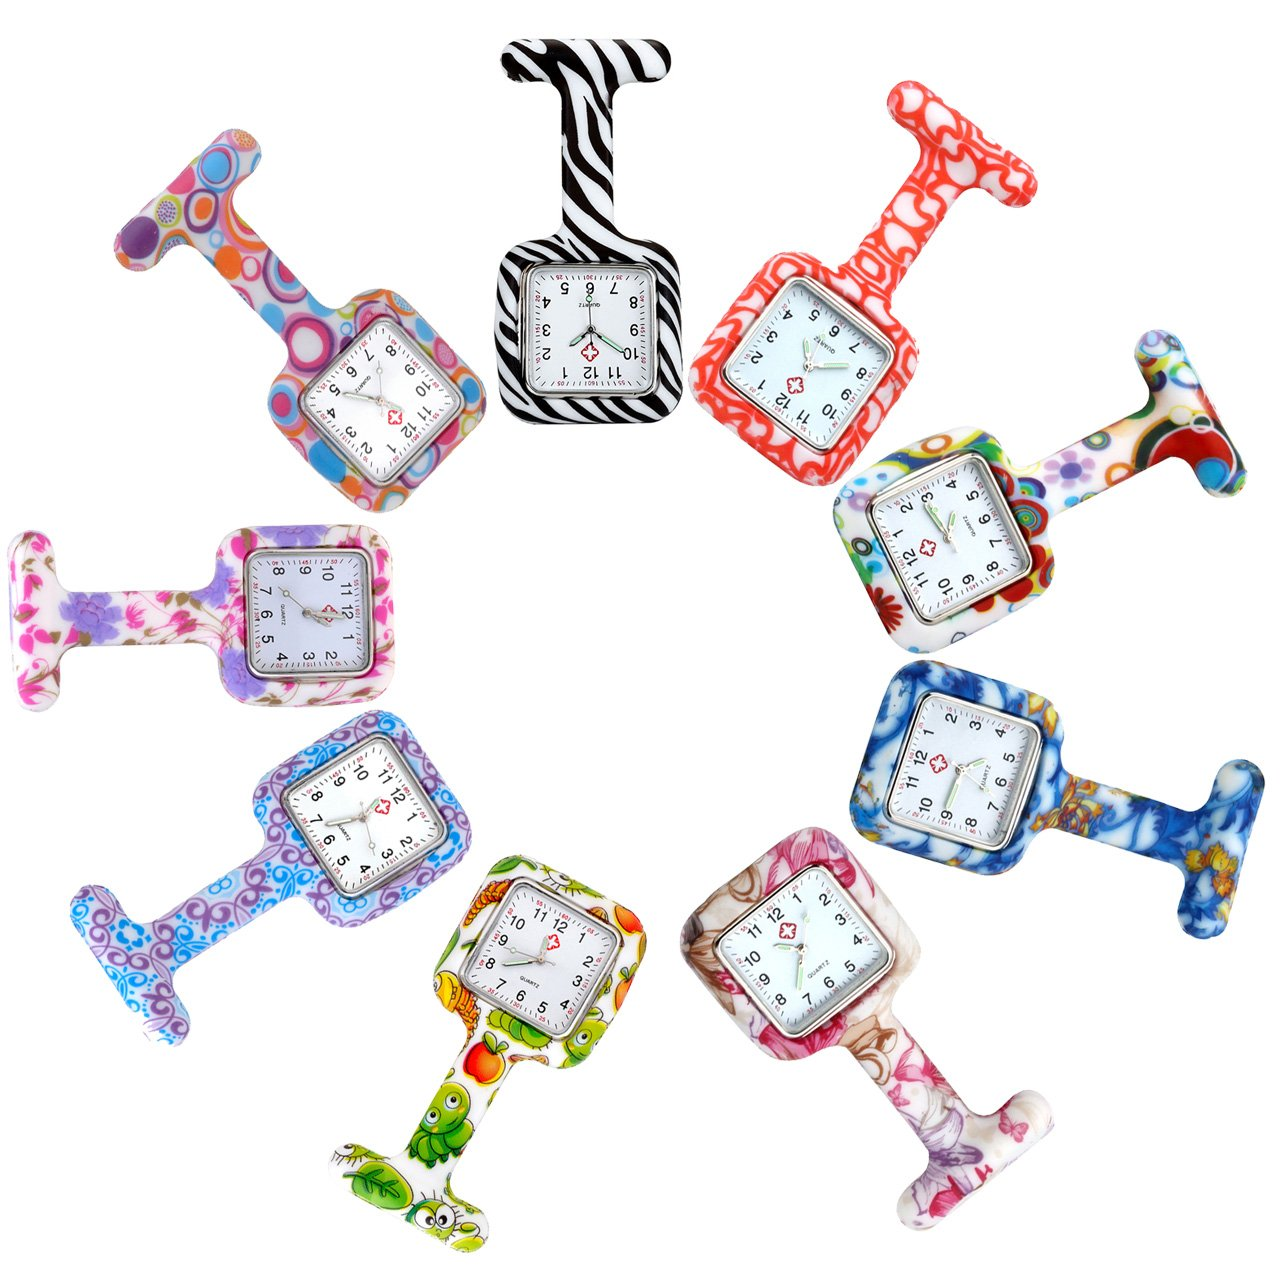 Top Plaza 9 PCs Silicone Fob Pocket Nurse Analog Quartz Watches Set - Floral Square Jelly Clip on Brooch